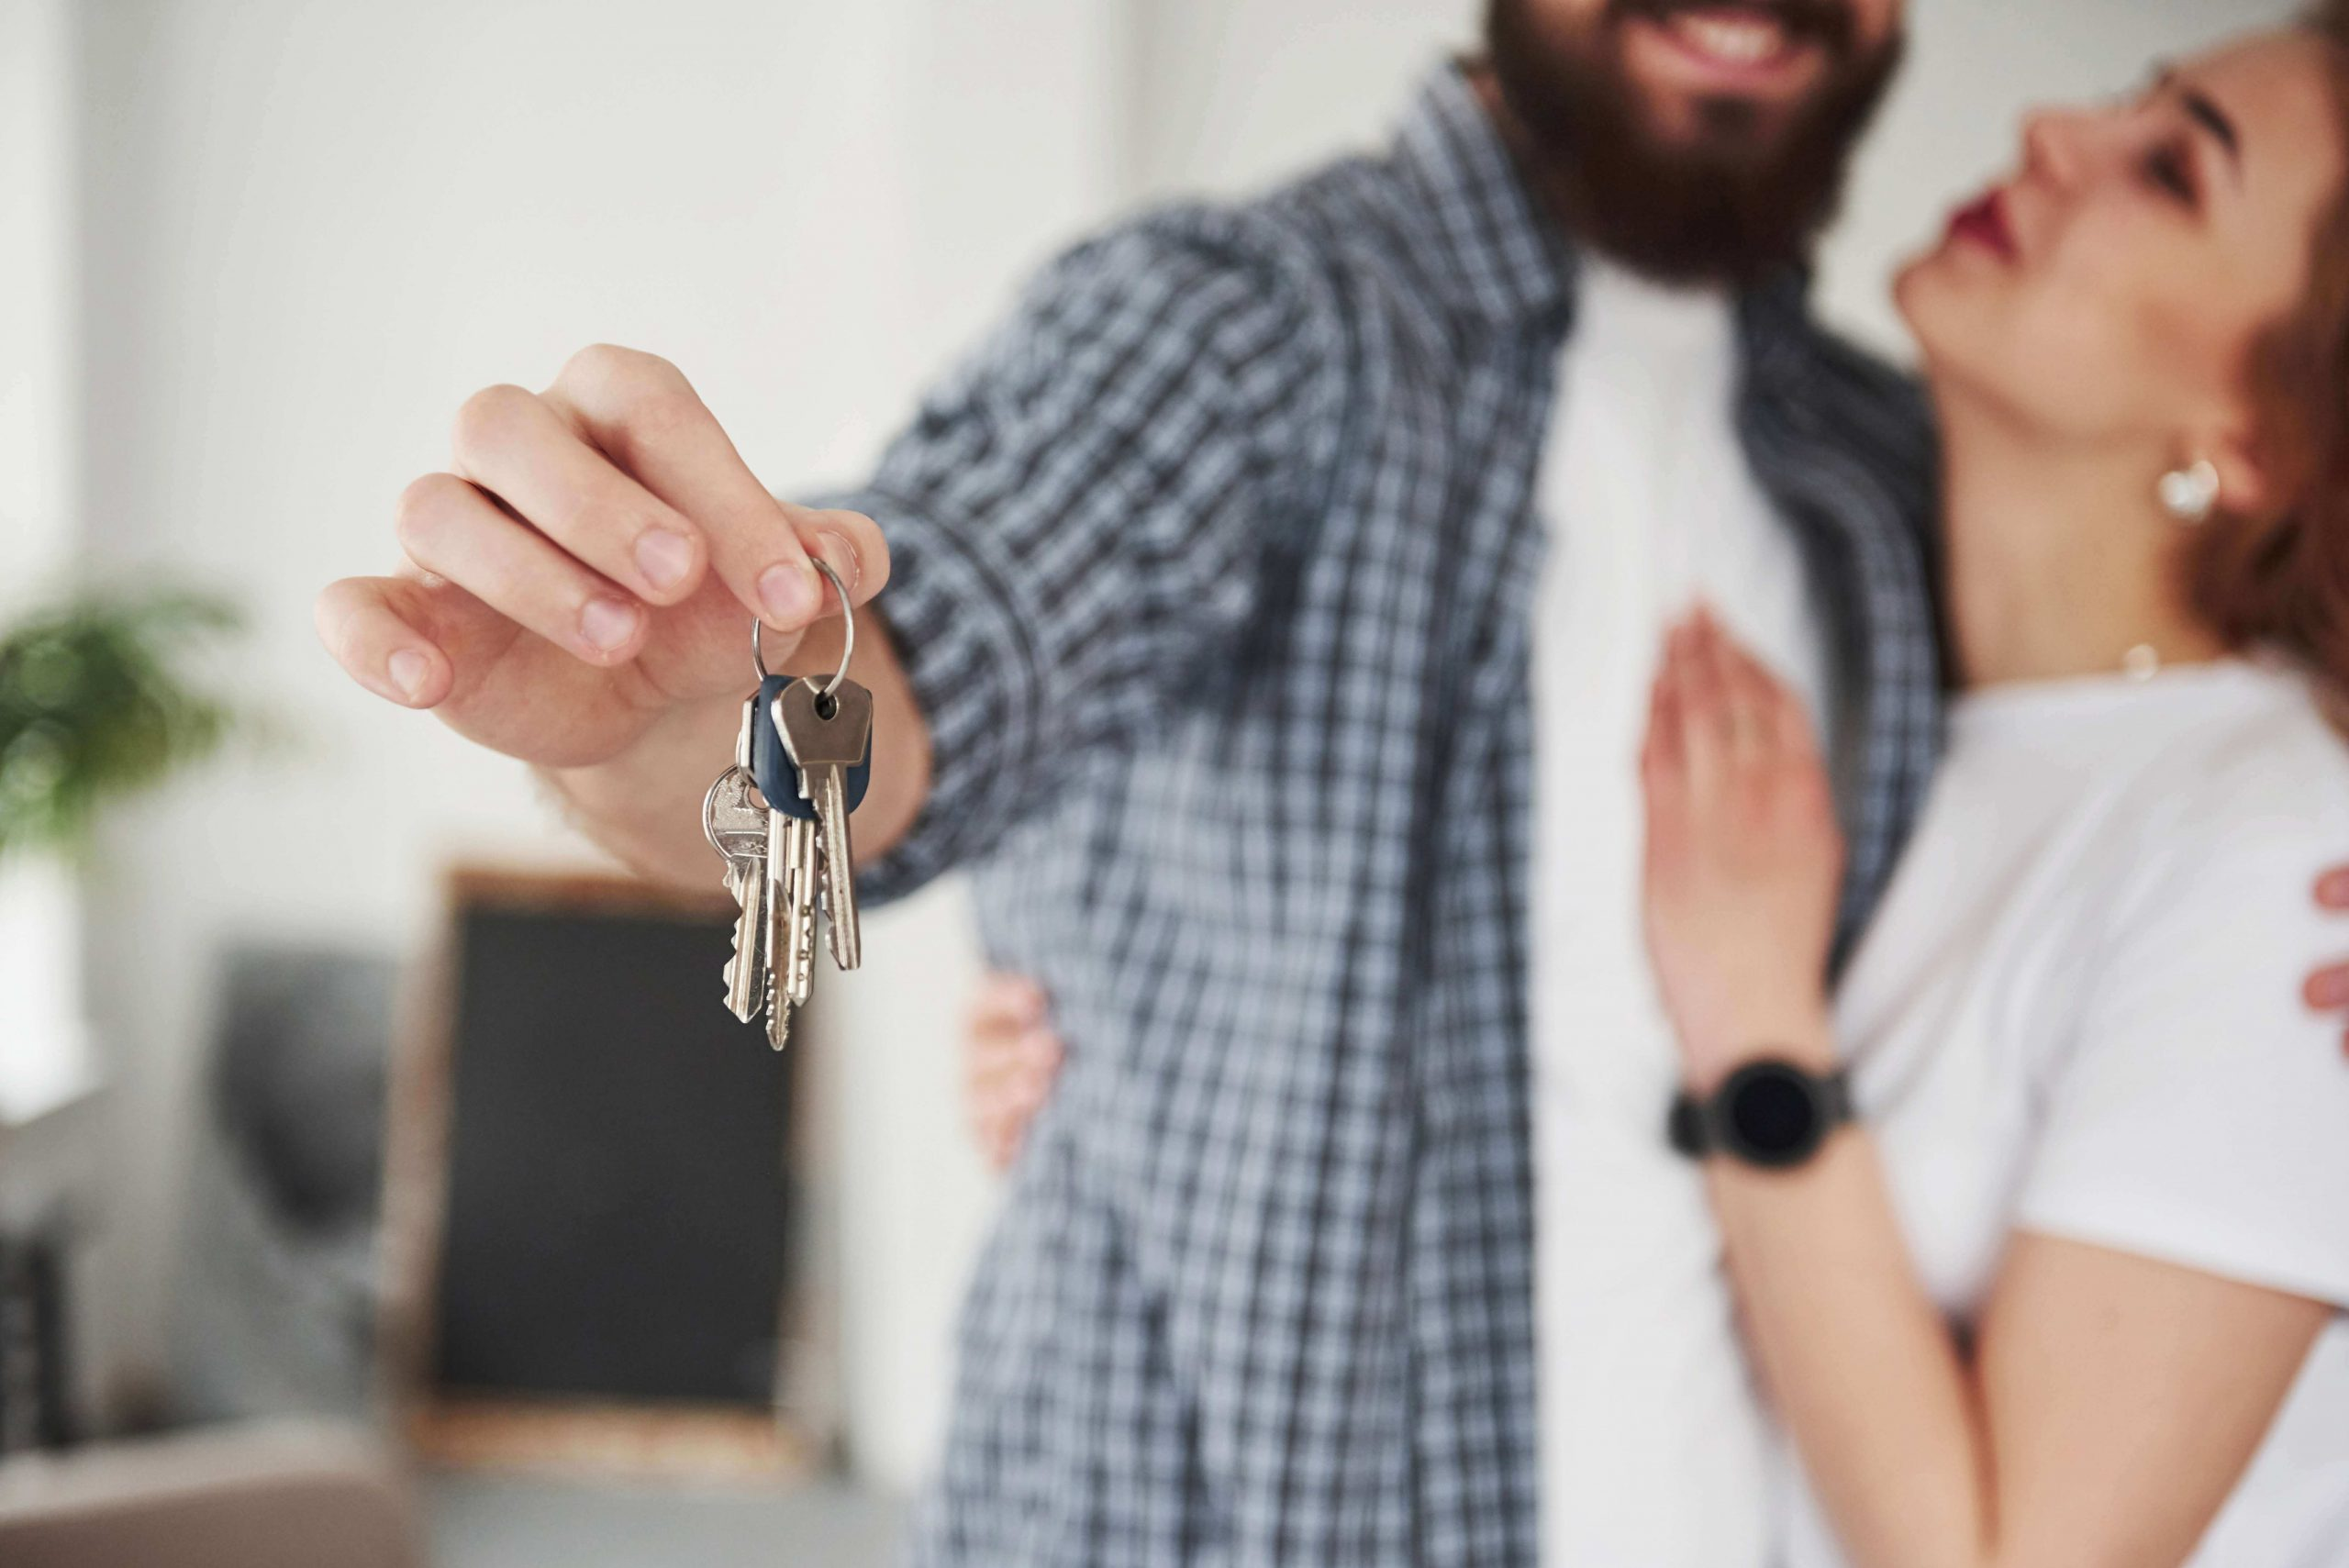 first-apartment-checklist-with-key-and-wifi